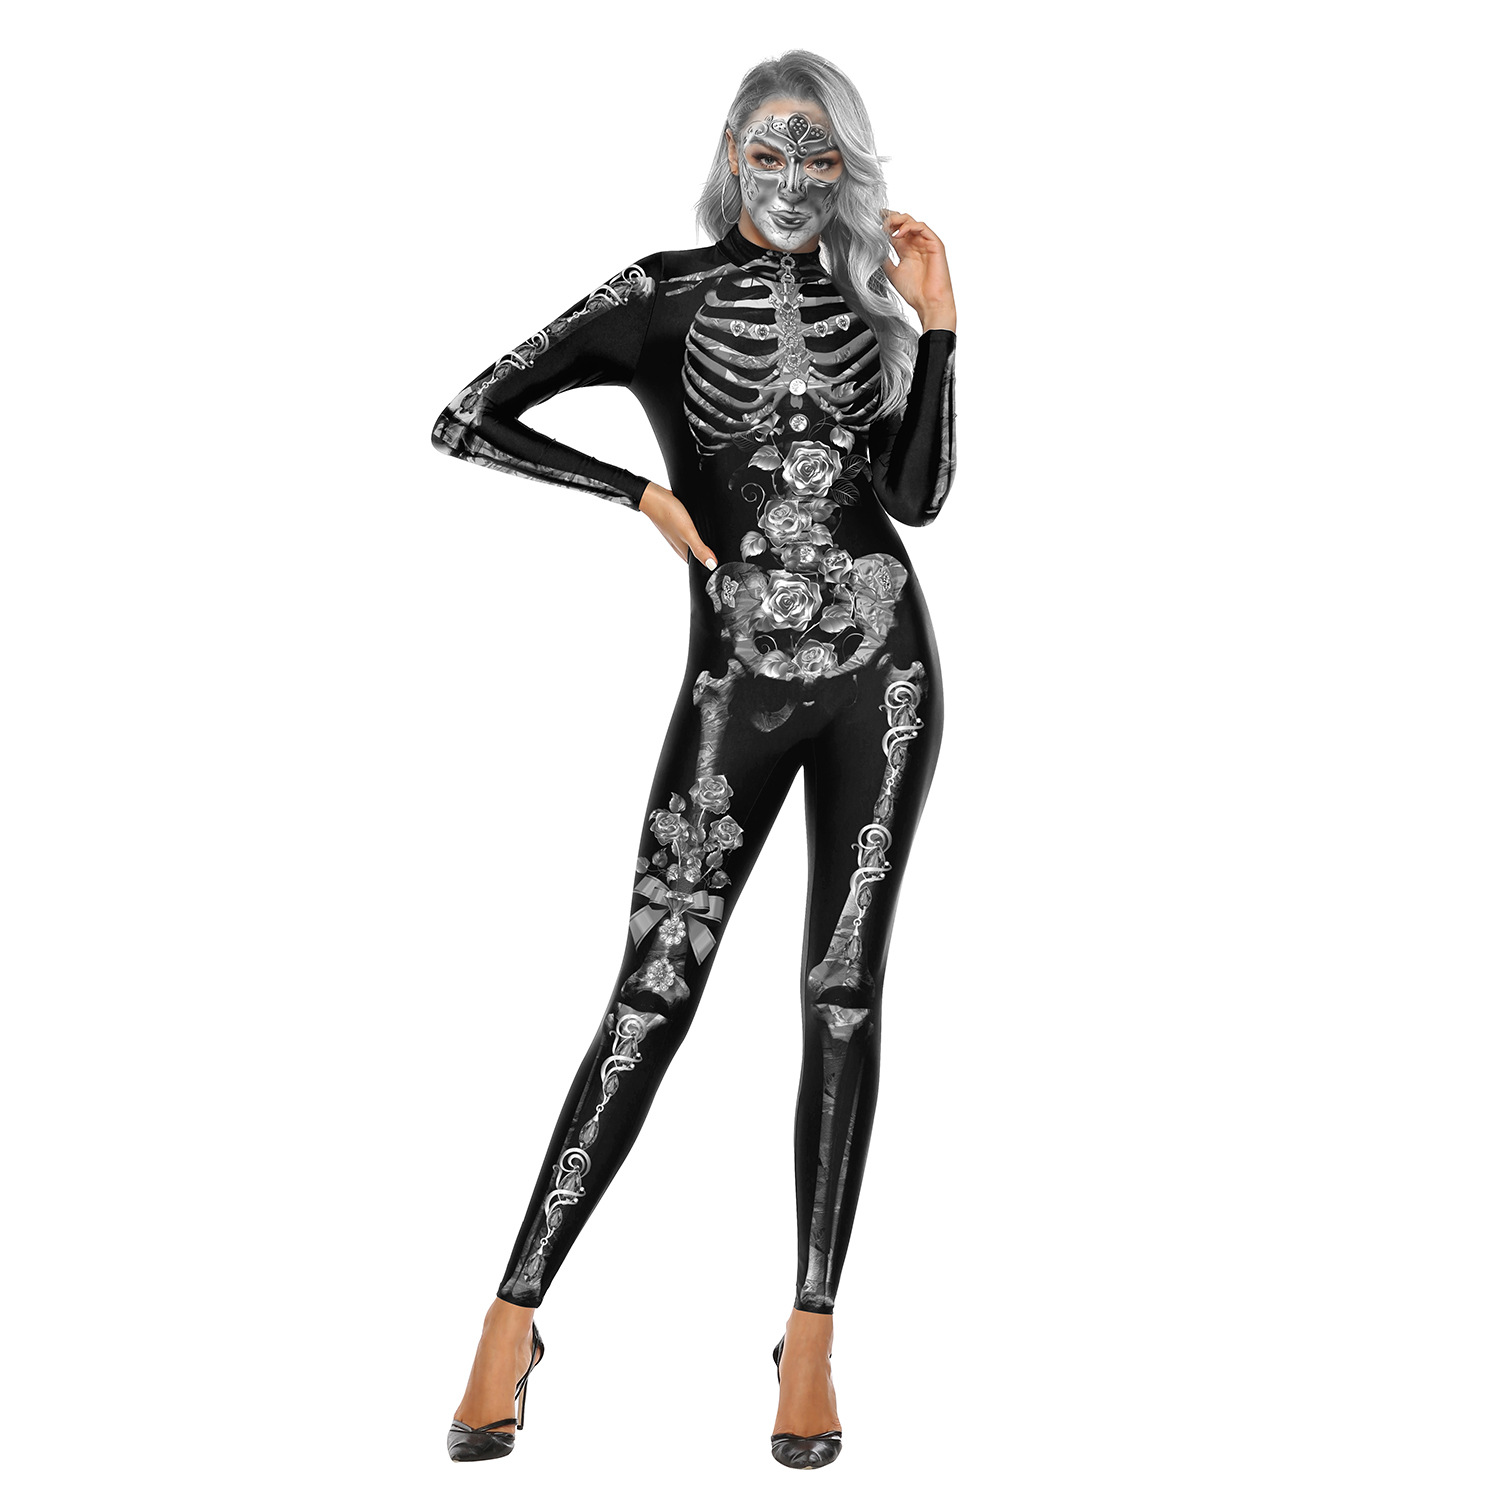 Female Skeleton Printing Jumpsuits Scary Cosplaying for Halloween Festival  WB142-002_S